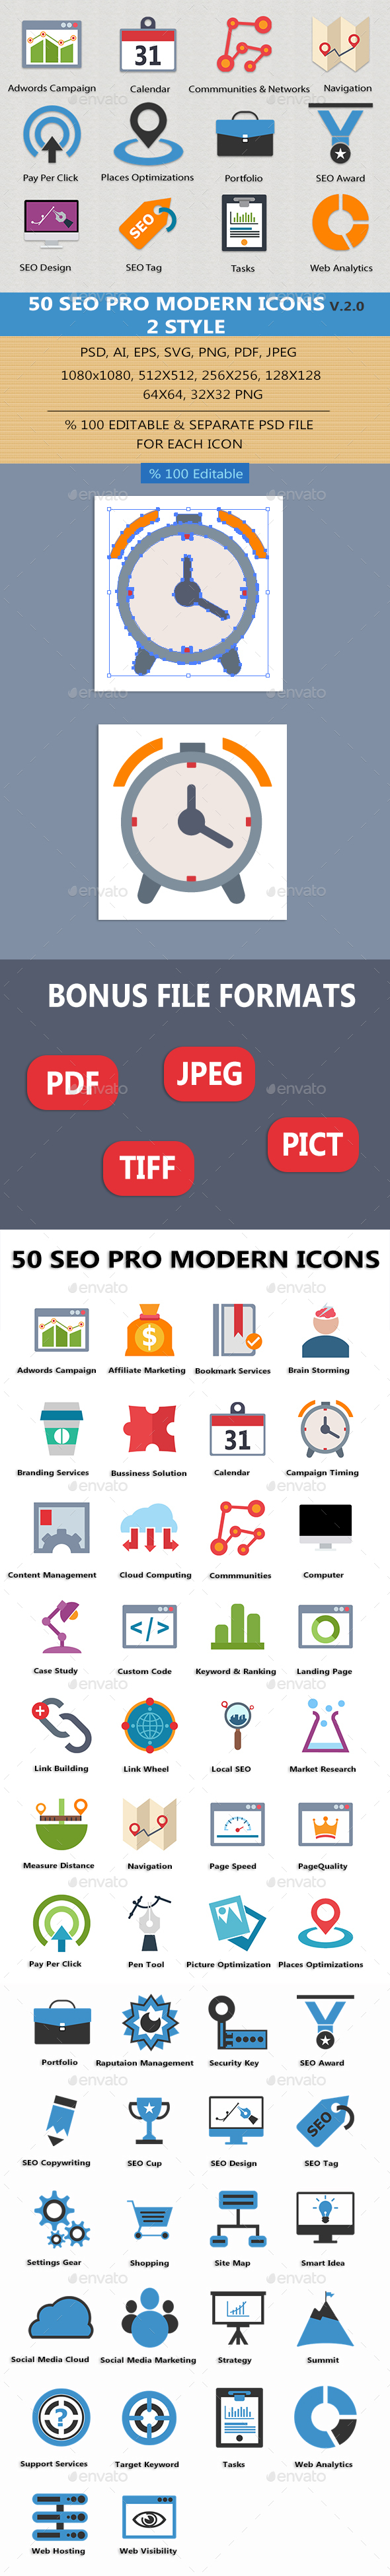 SEO Pro Modern Icons v2.0 - Business Icons